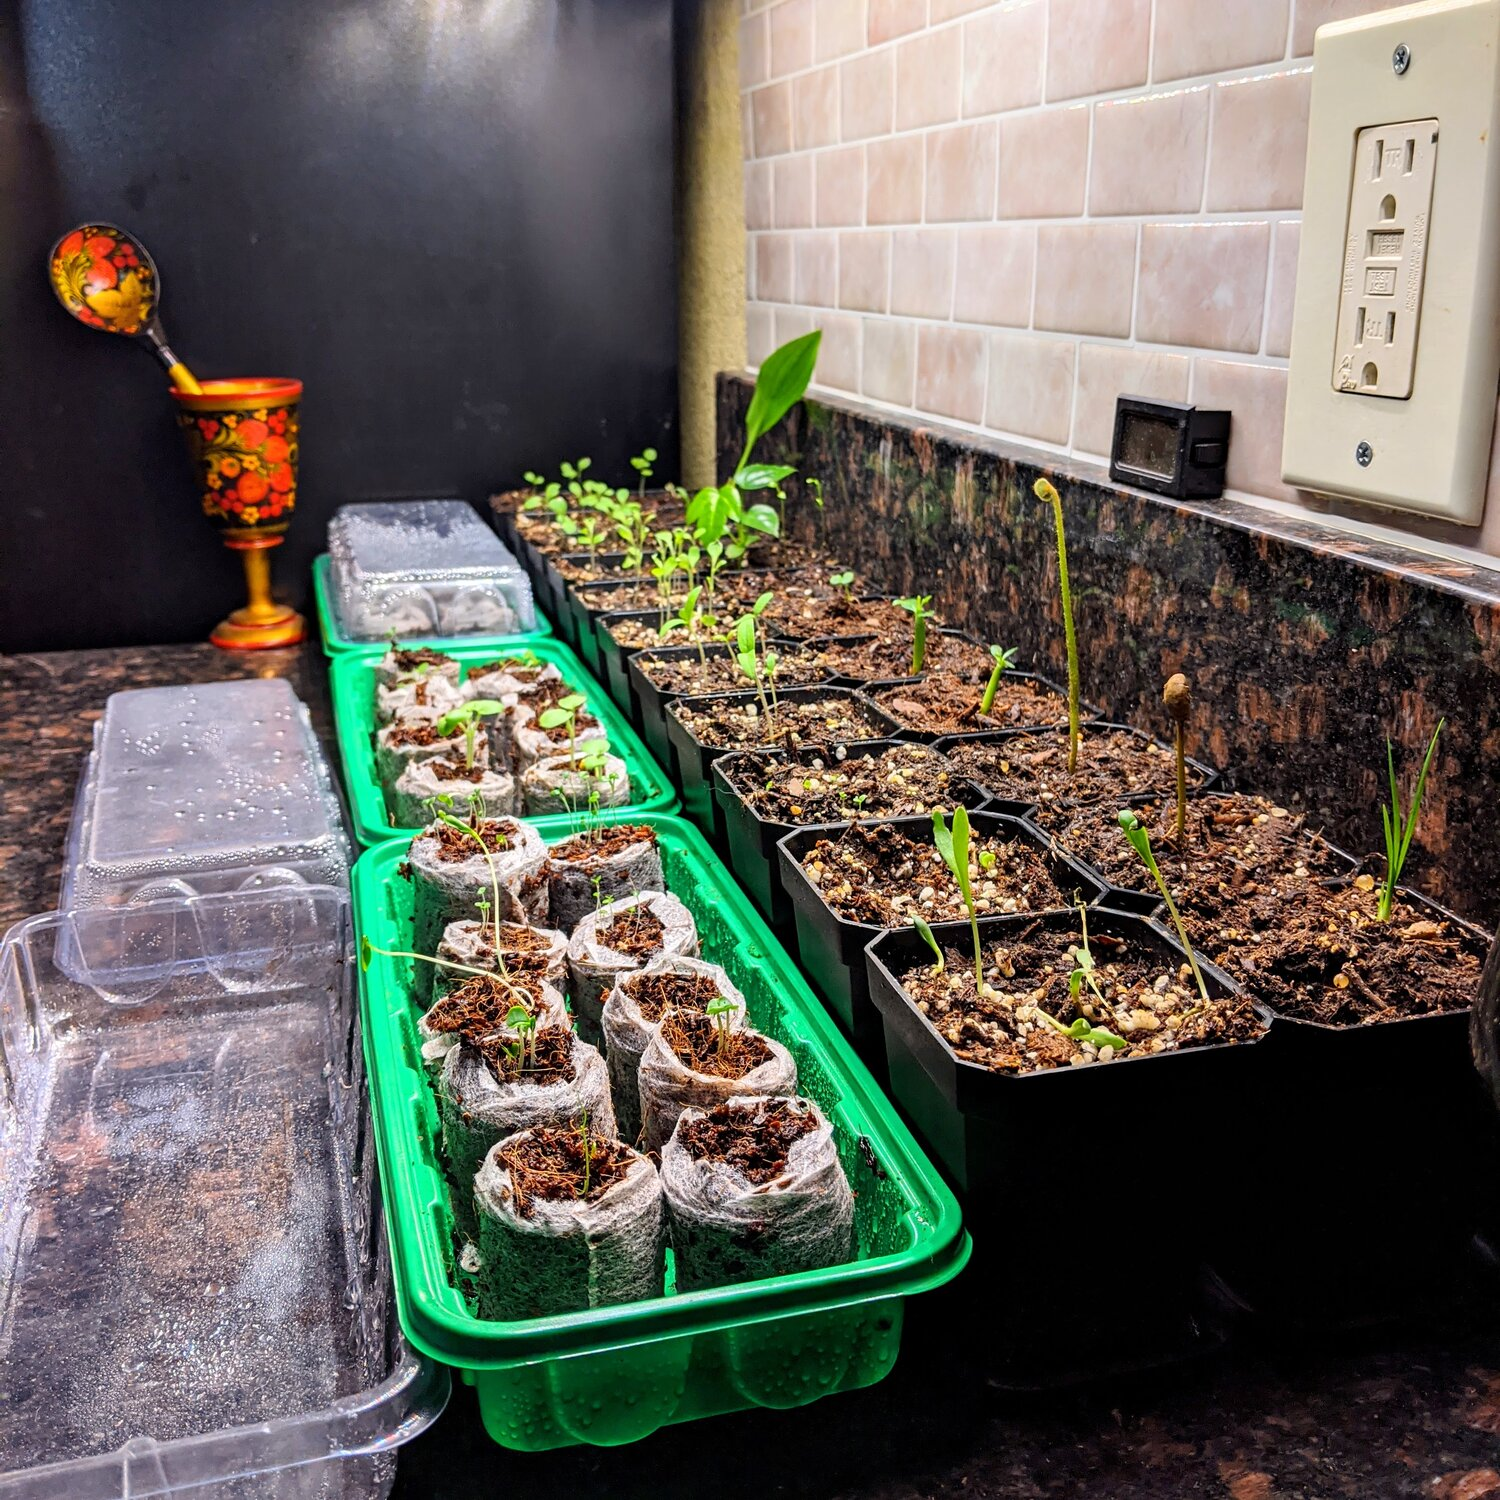 Seed Sprouts in Mini Greenhouses